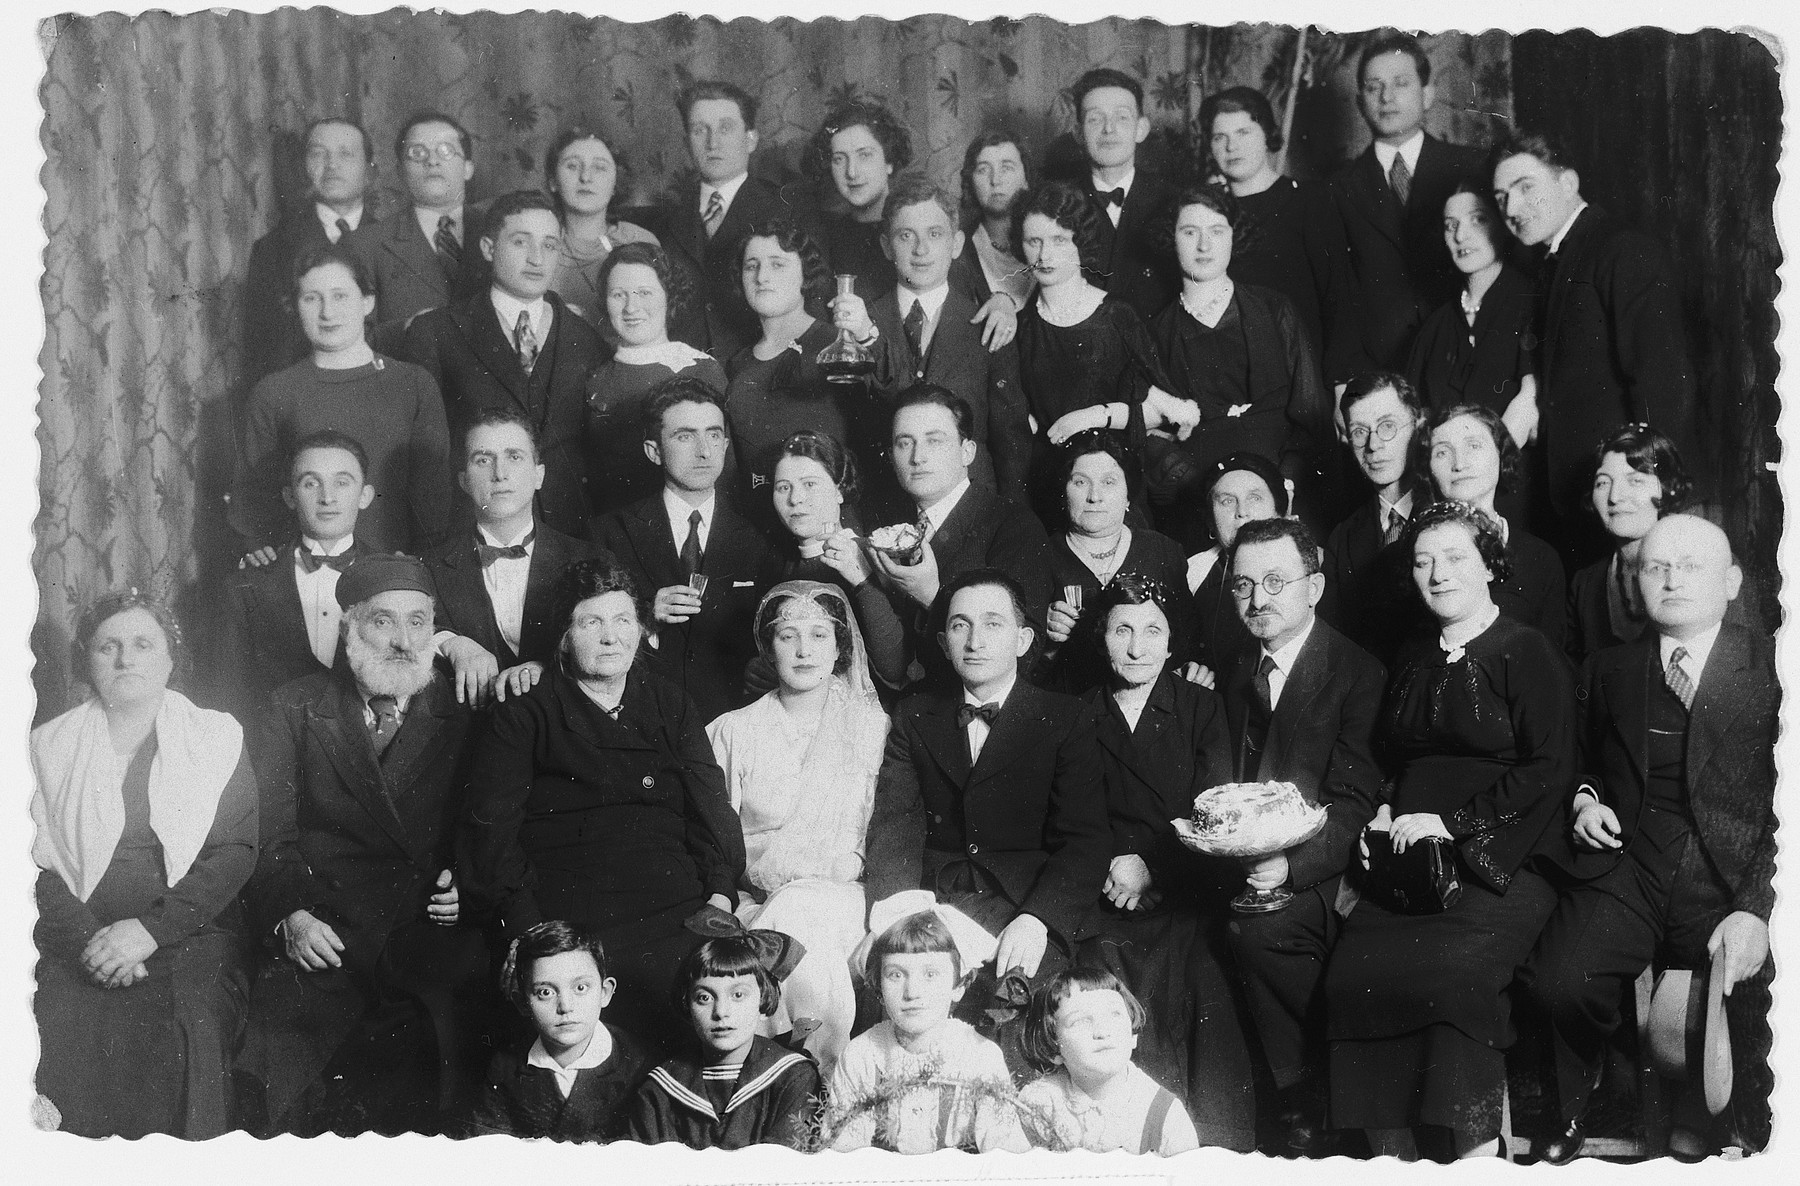 A large Jewish family from Brest  poses for a group wedding portrait.  Among those pictured are Chaim and Grunya Chinkes.  None of those pictured survived.  The photograph was sent to the brother of the groom, who had immigrated to Argentina before the war.